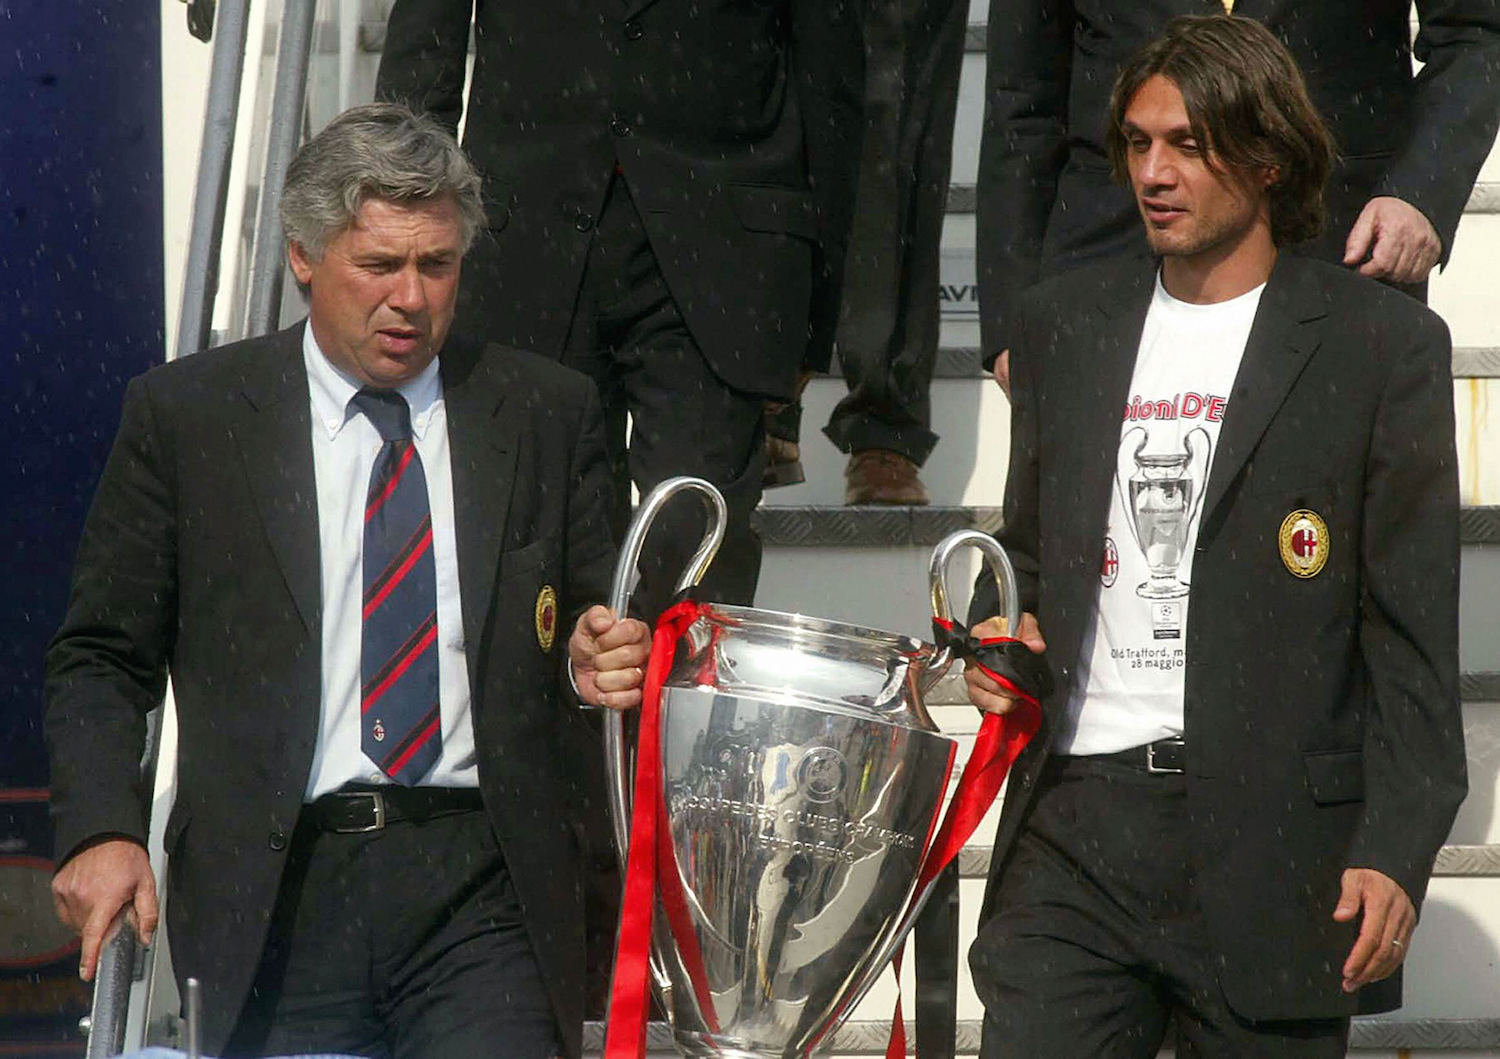 AC Milan coach Carlo Ancelotti (L) descends from the plane together with his captain Paolo Maldini carrying the Champions League Cup, won 28 MAY in the final match against Juventus at the Old Trafford stadium in Manchester, as they arrive at Milan's Malpensa international airport 29 May 2003.  AFP PHOTO /Str  (Photo credit should read STR/AFP/Getty Images)